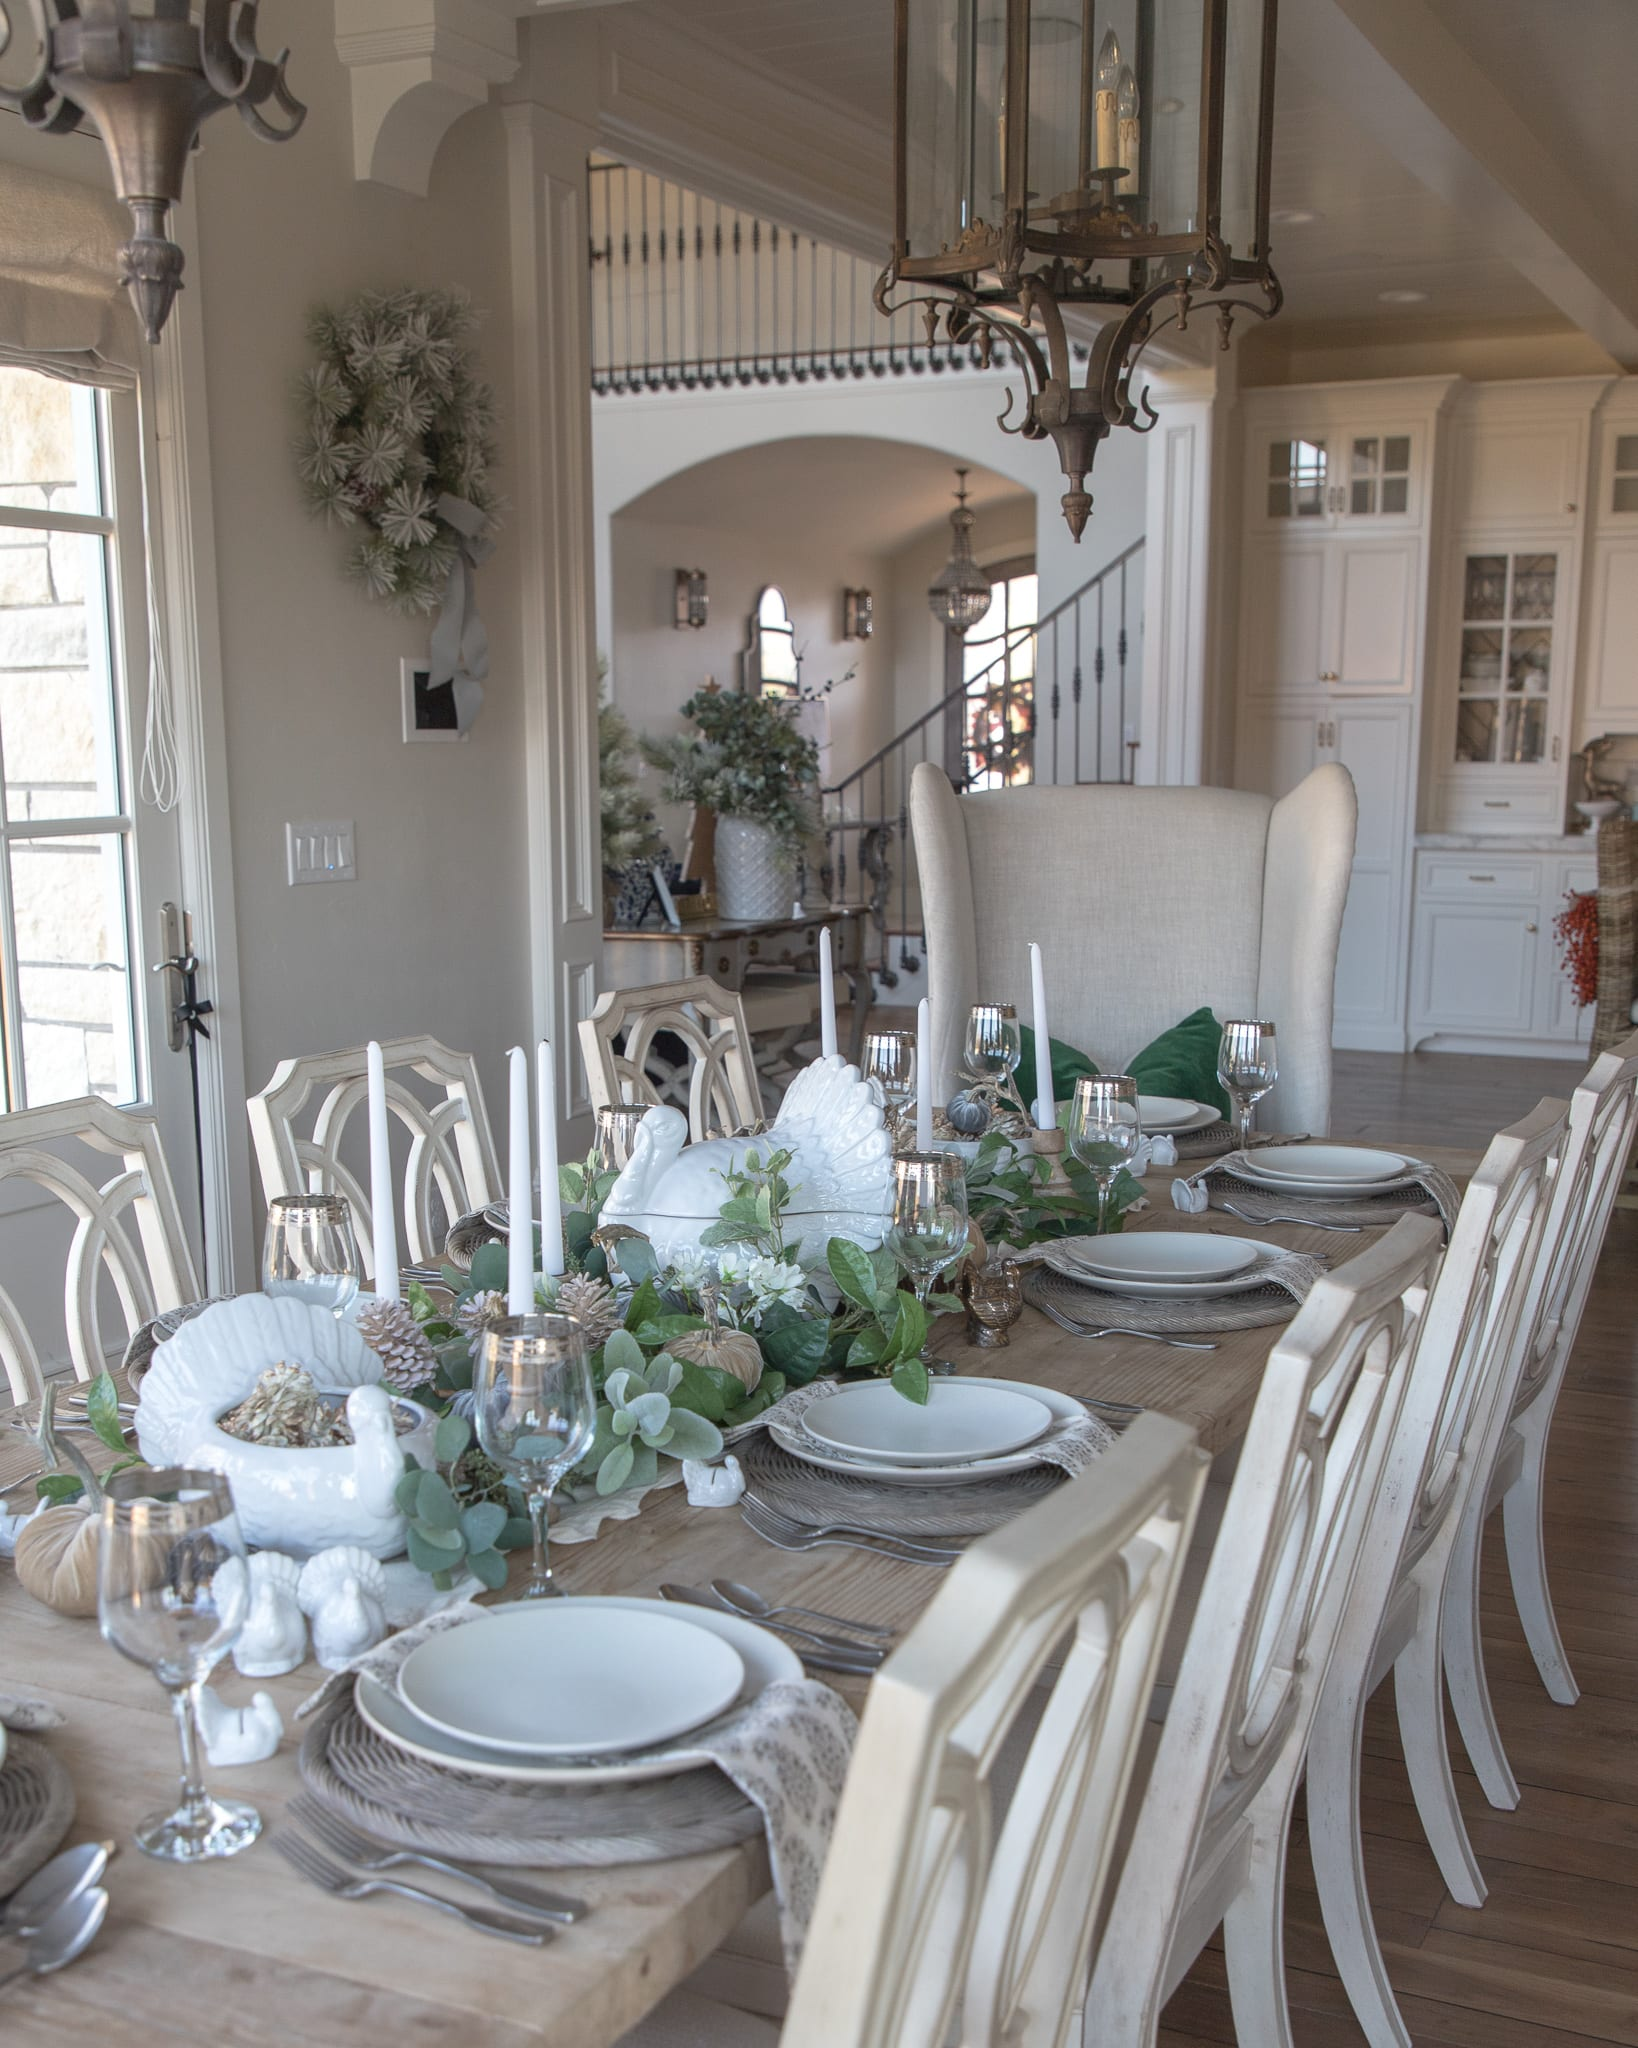 turkey turkeys tablescape white and green tablescape table setting place setting thanksgiving turkey day dinner table dining table dining room pottery barn entertaining